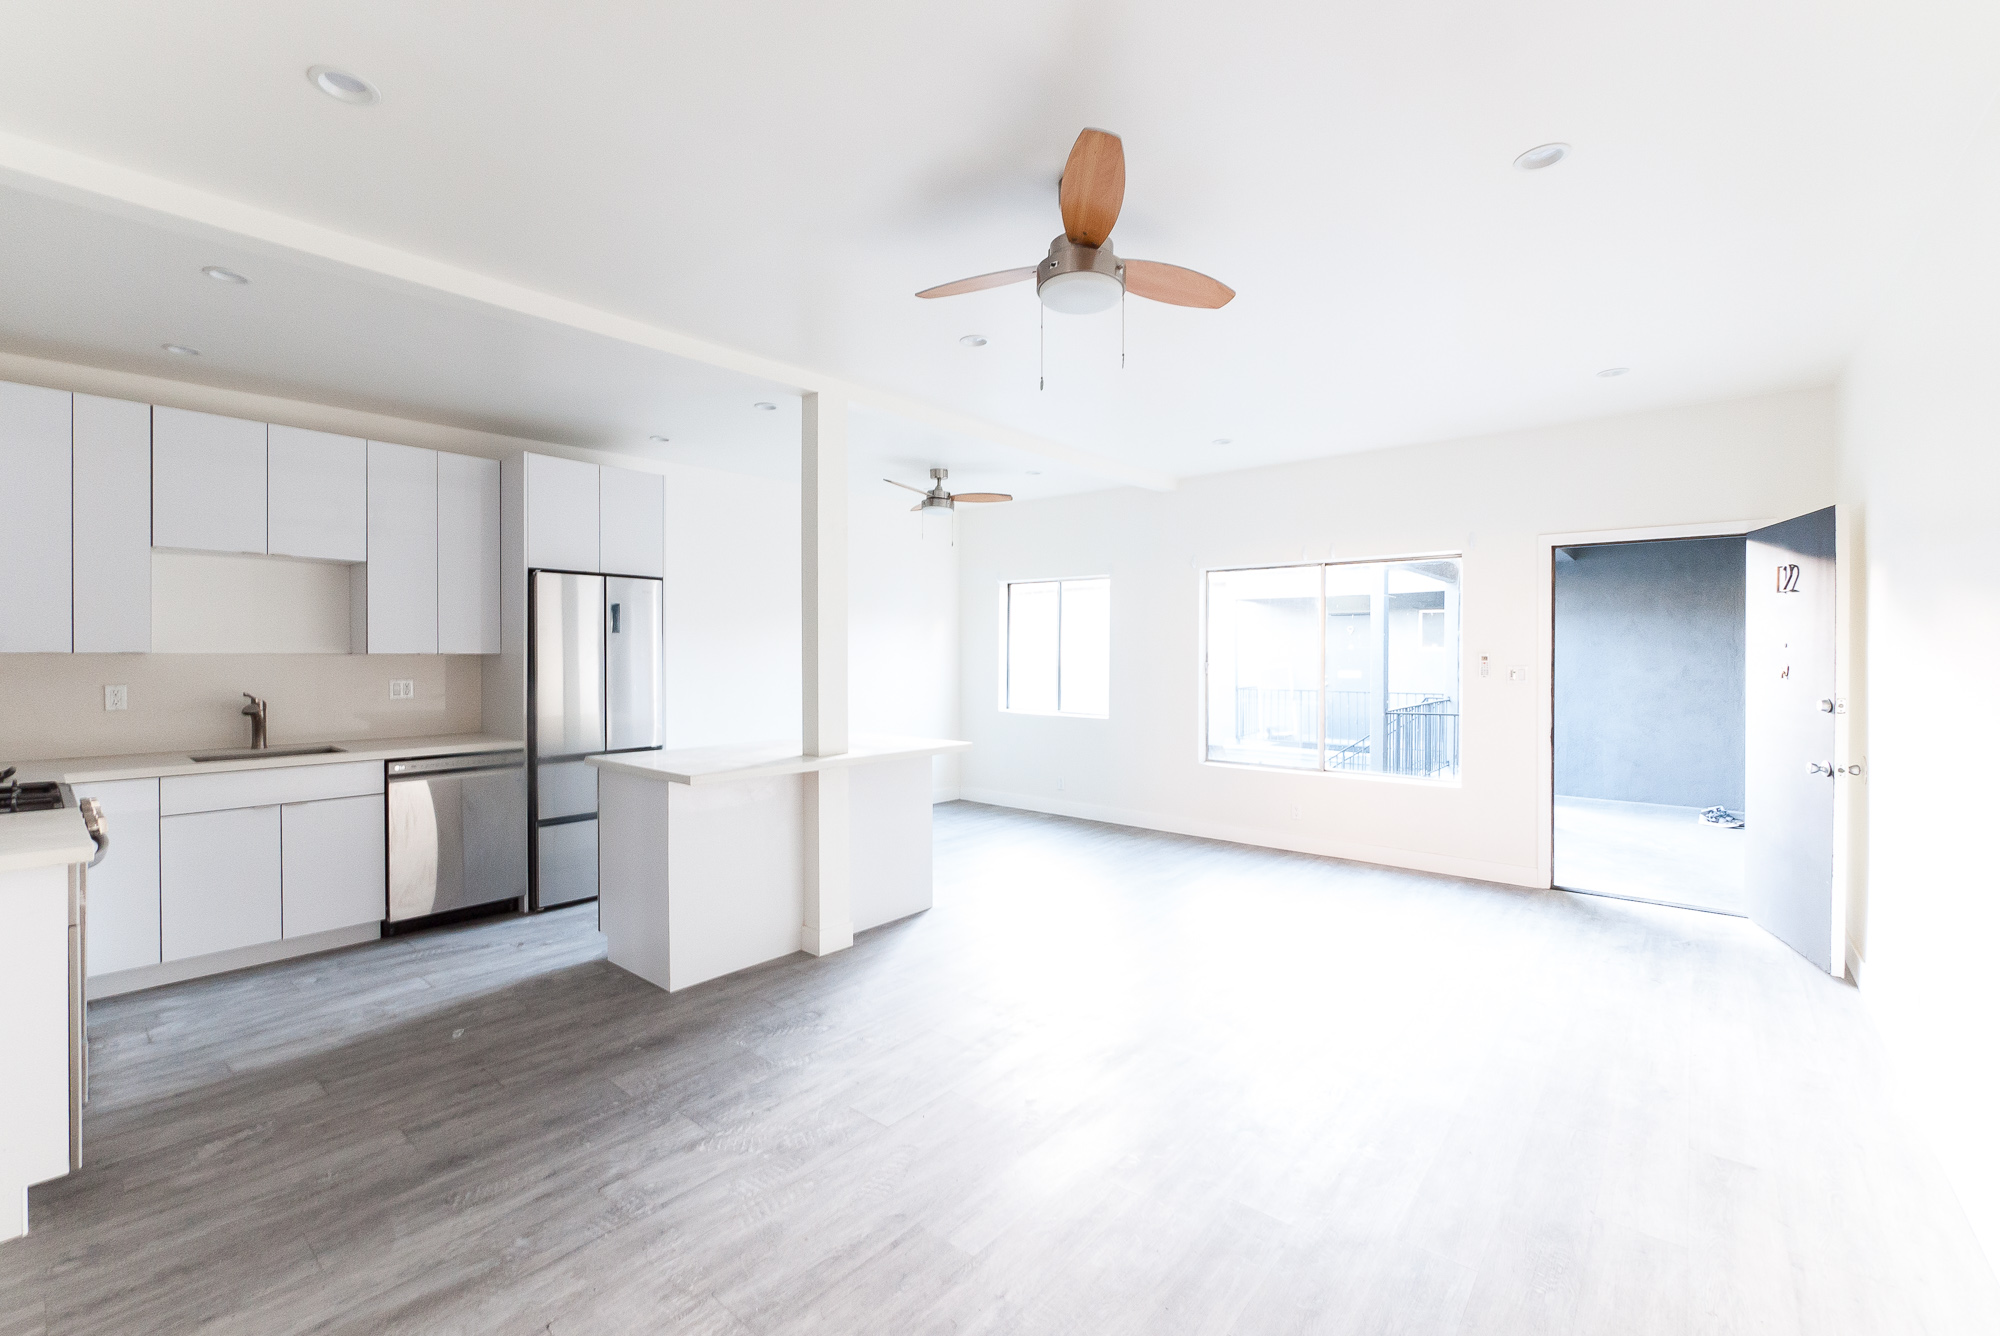 Sleek , Modern & New! Huge 1 Bed - Huge Kitchen w/Island- DW - French Door Fridge- Double Paned Windows- Perfect Miracle Mile Location - Close to Everything!